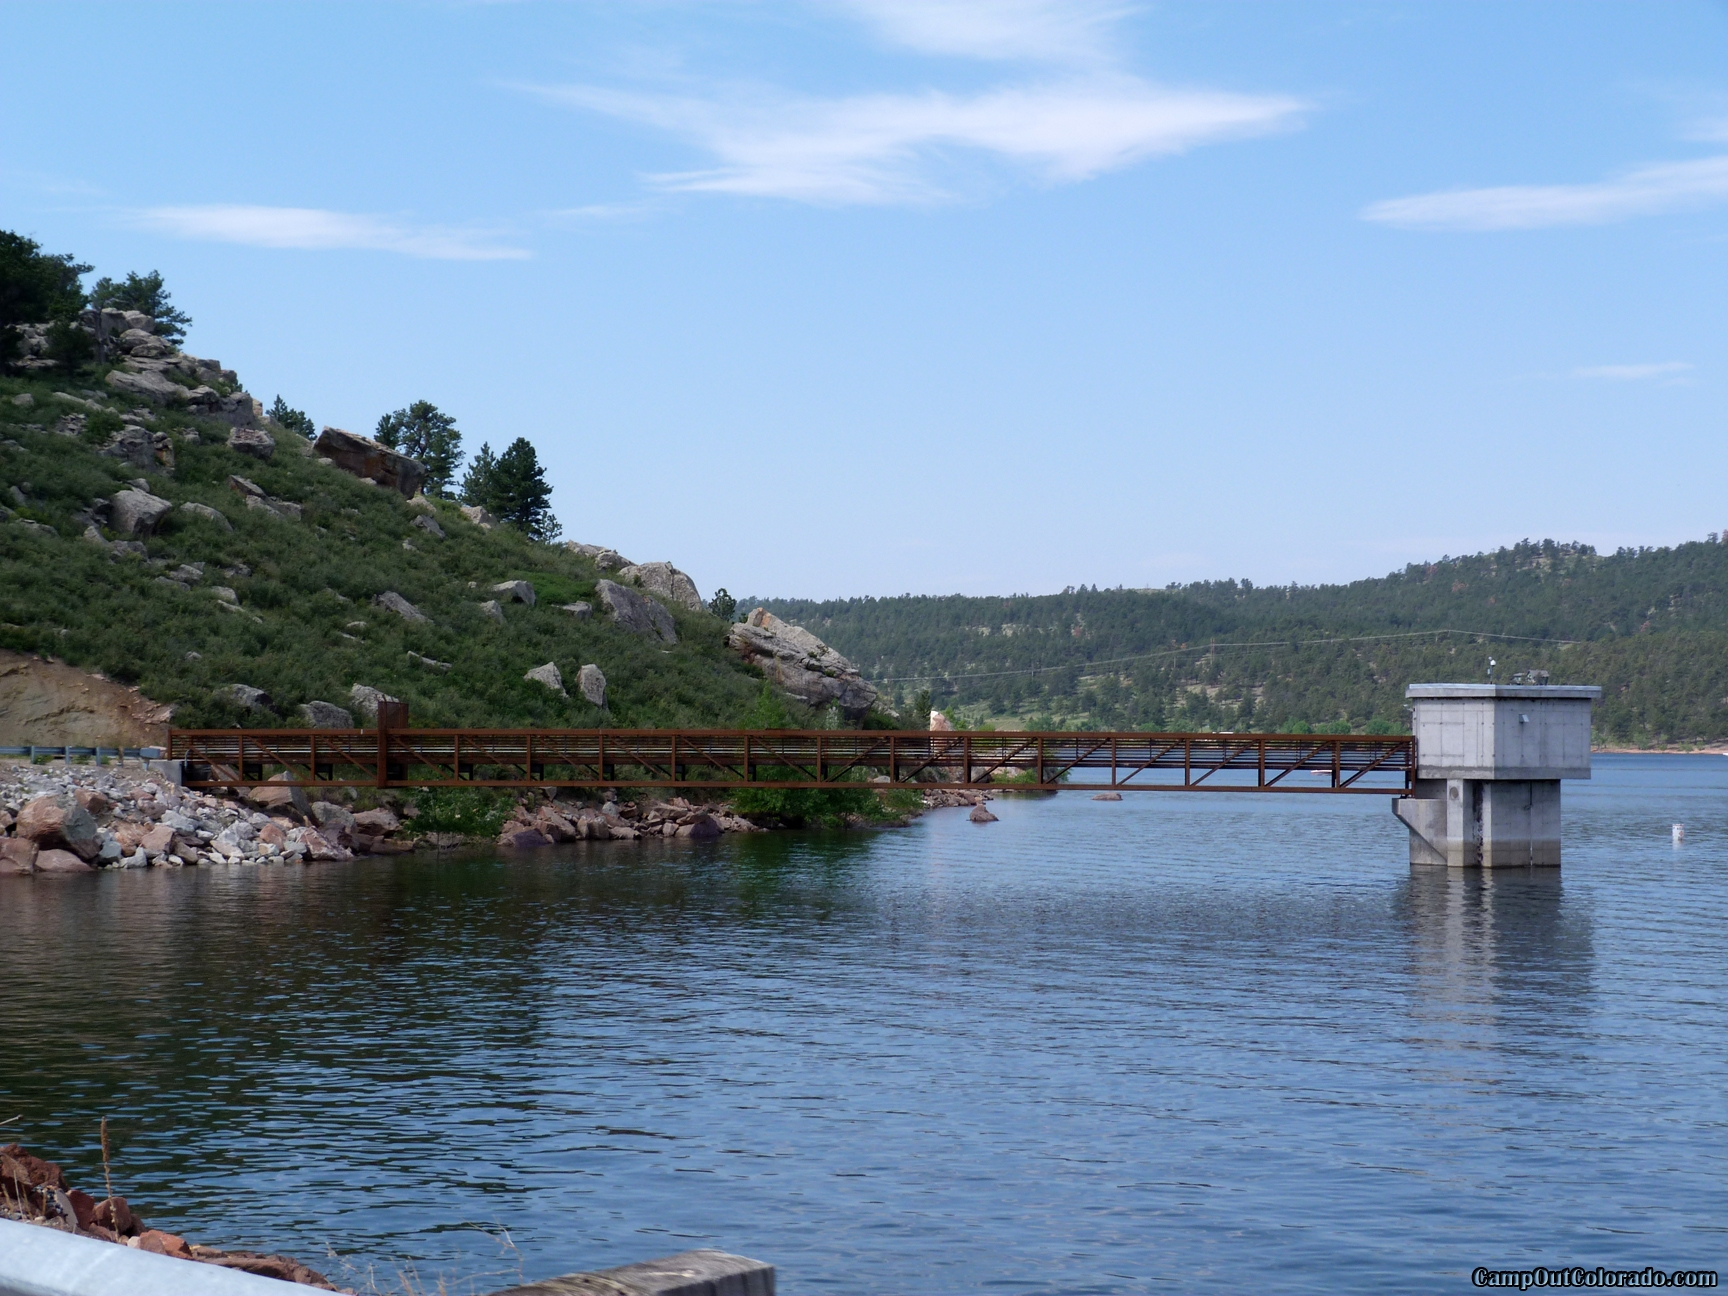 camp-out-colorado-carter-lake-dam